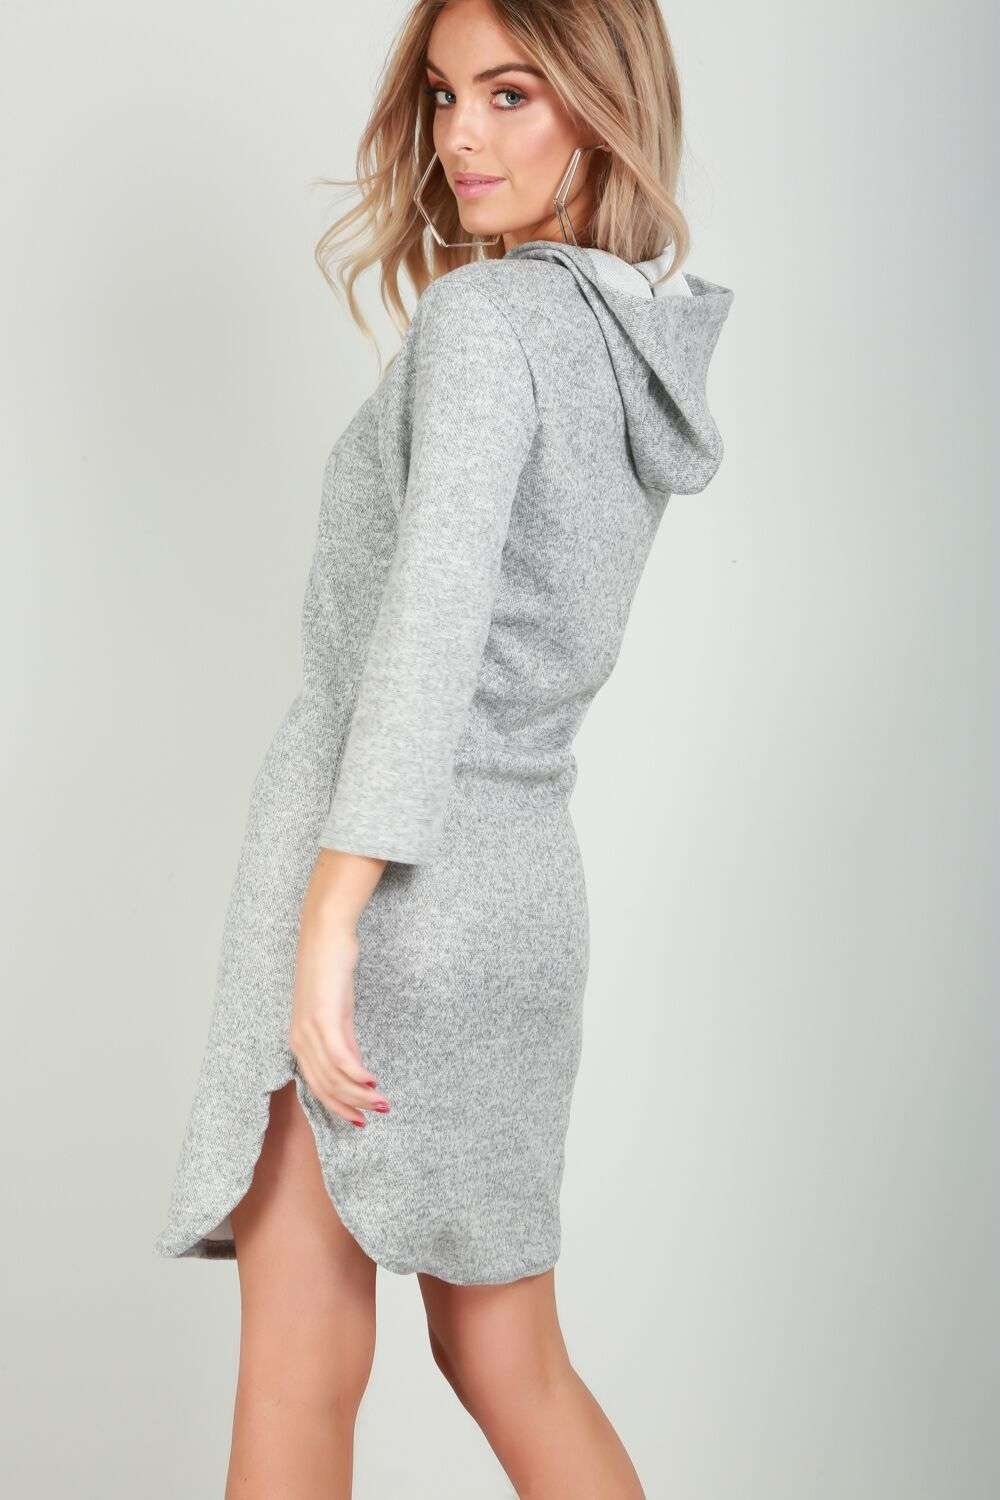 Violet Long Sleeve Curved Hem Sweater Dress - bejealous-com